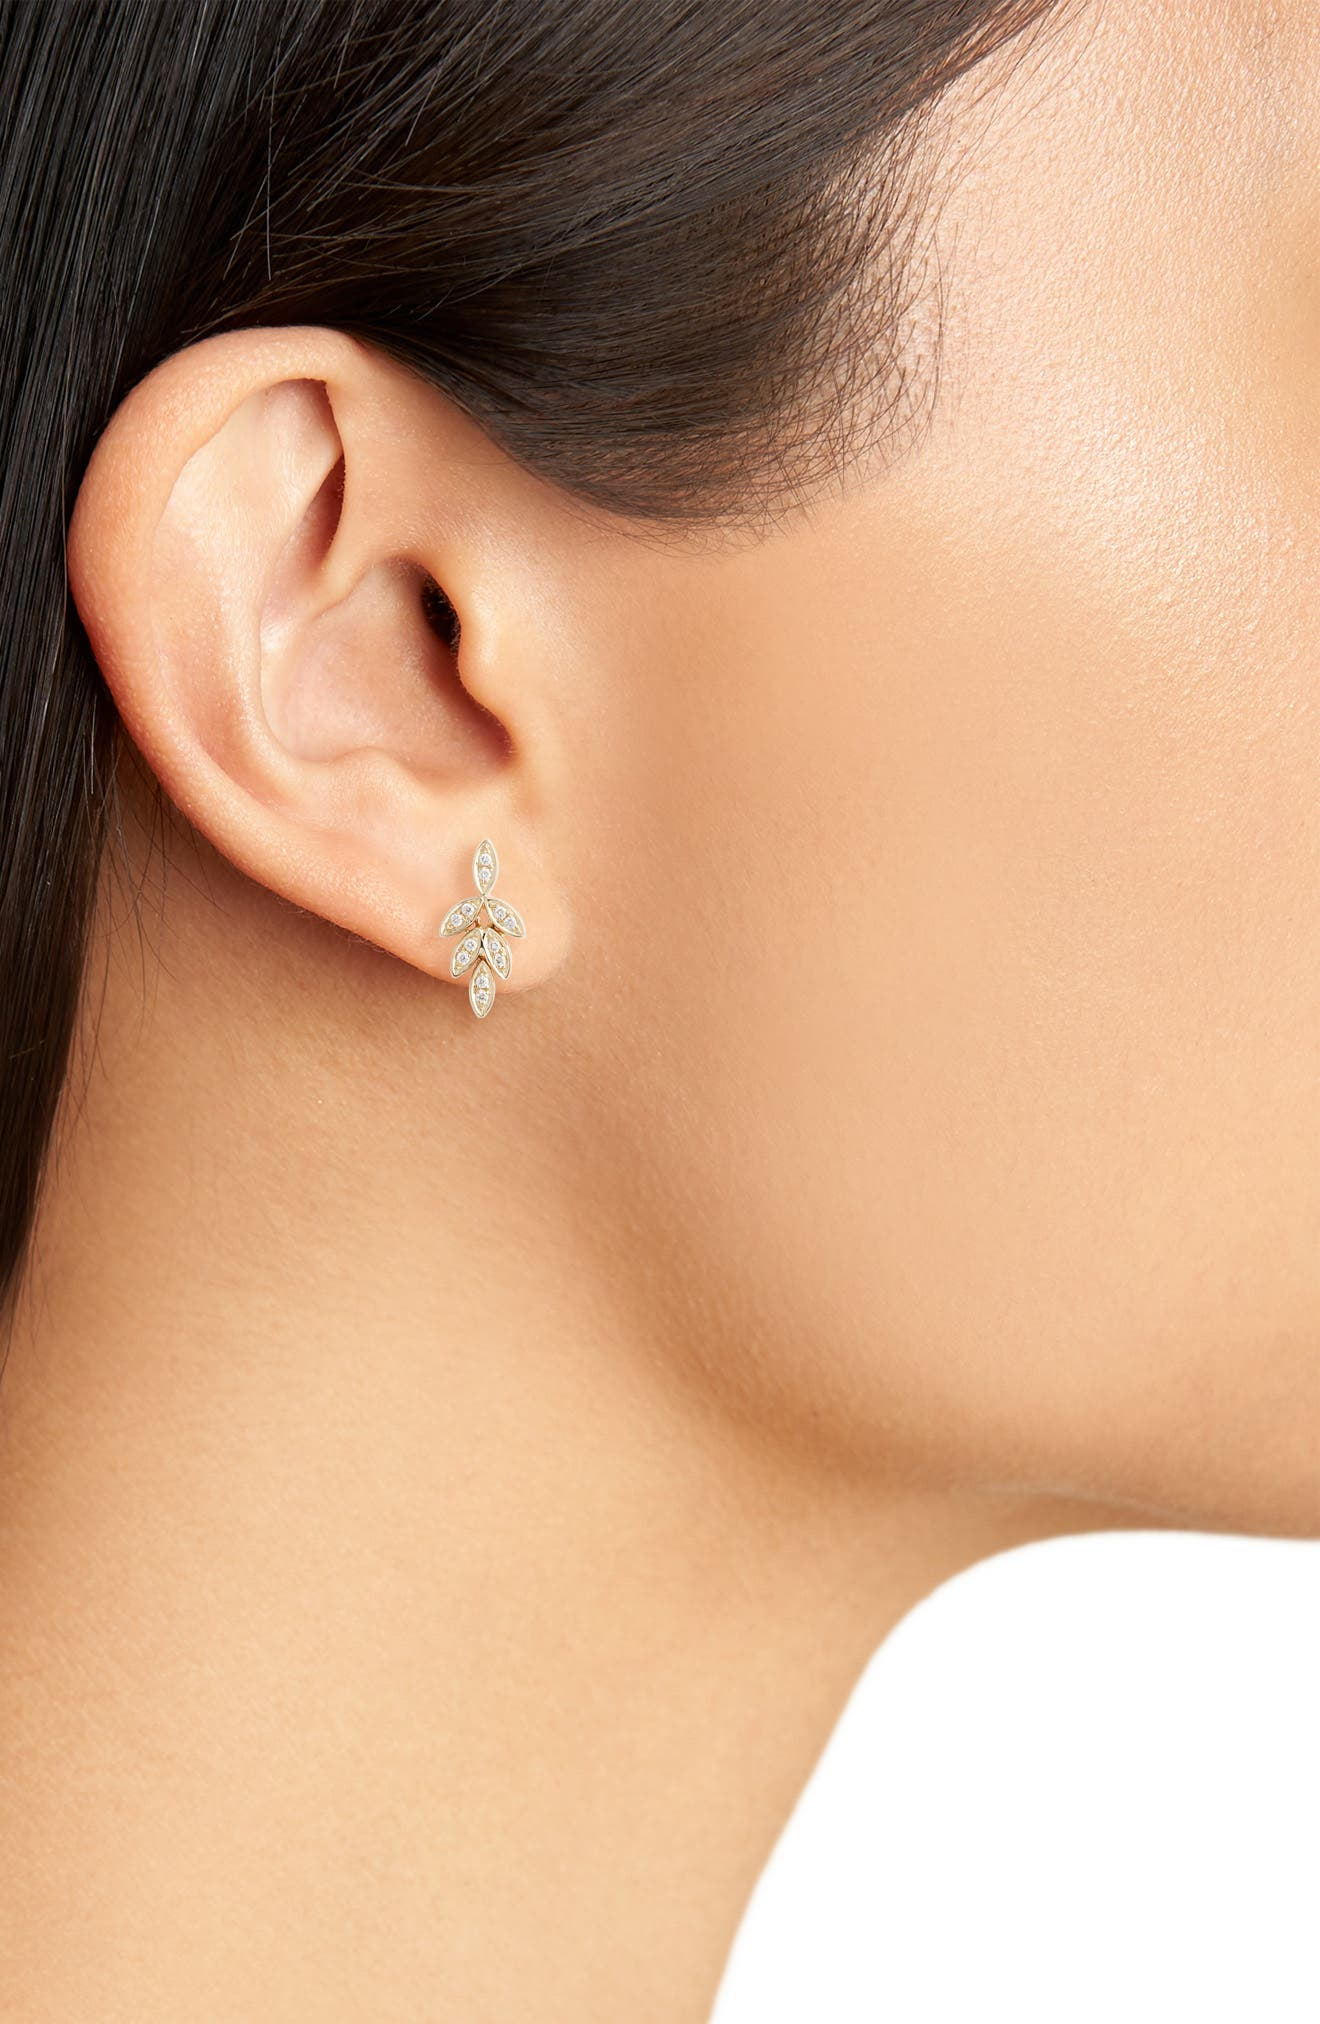 Dana Rebecca Lori Paige Diamond Leaf Stud Earrings,                             Alternate thumbnail 2, color,                             710